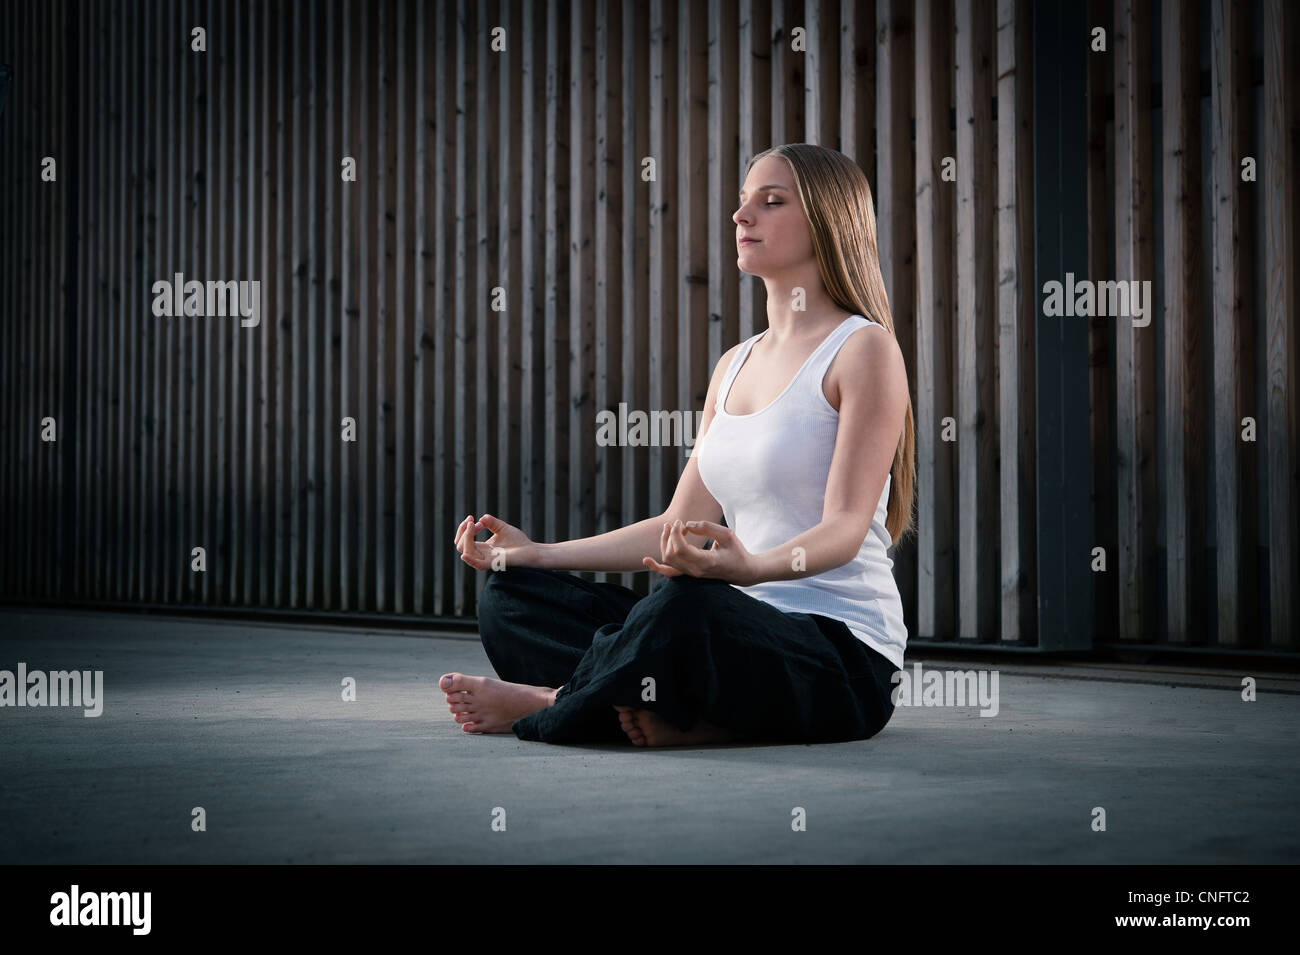 Young woman 20-25 sitting and meditating environment yoga meditation in a modern, cool, outdoor environment - Stock Image